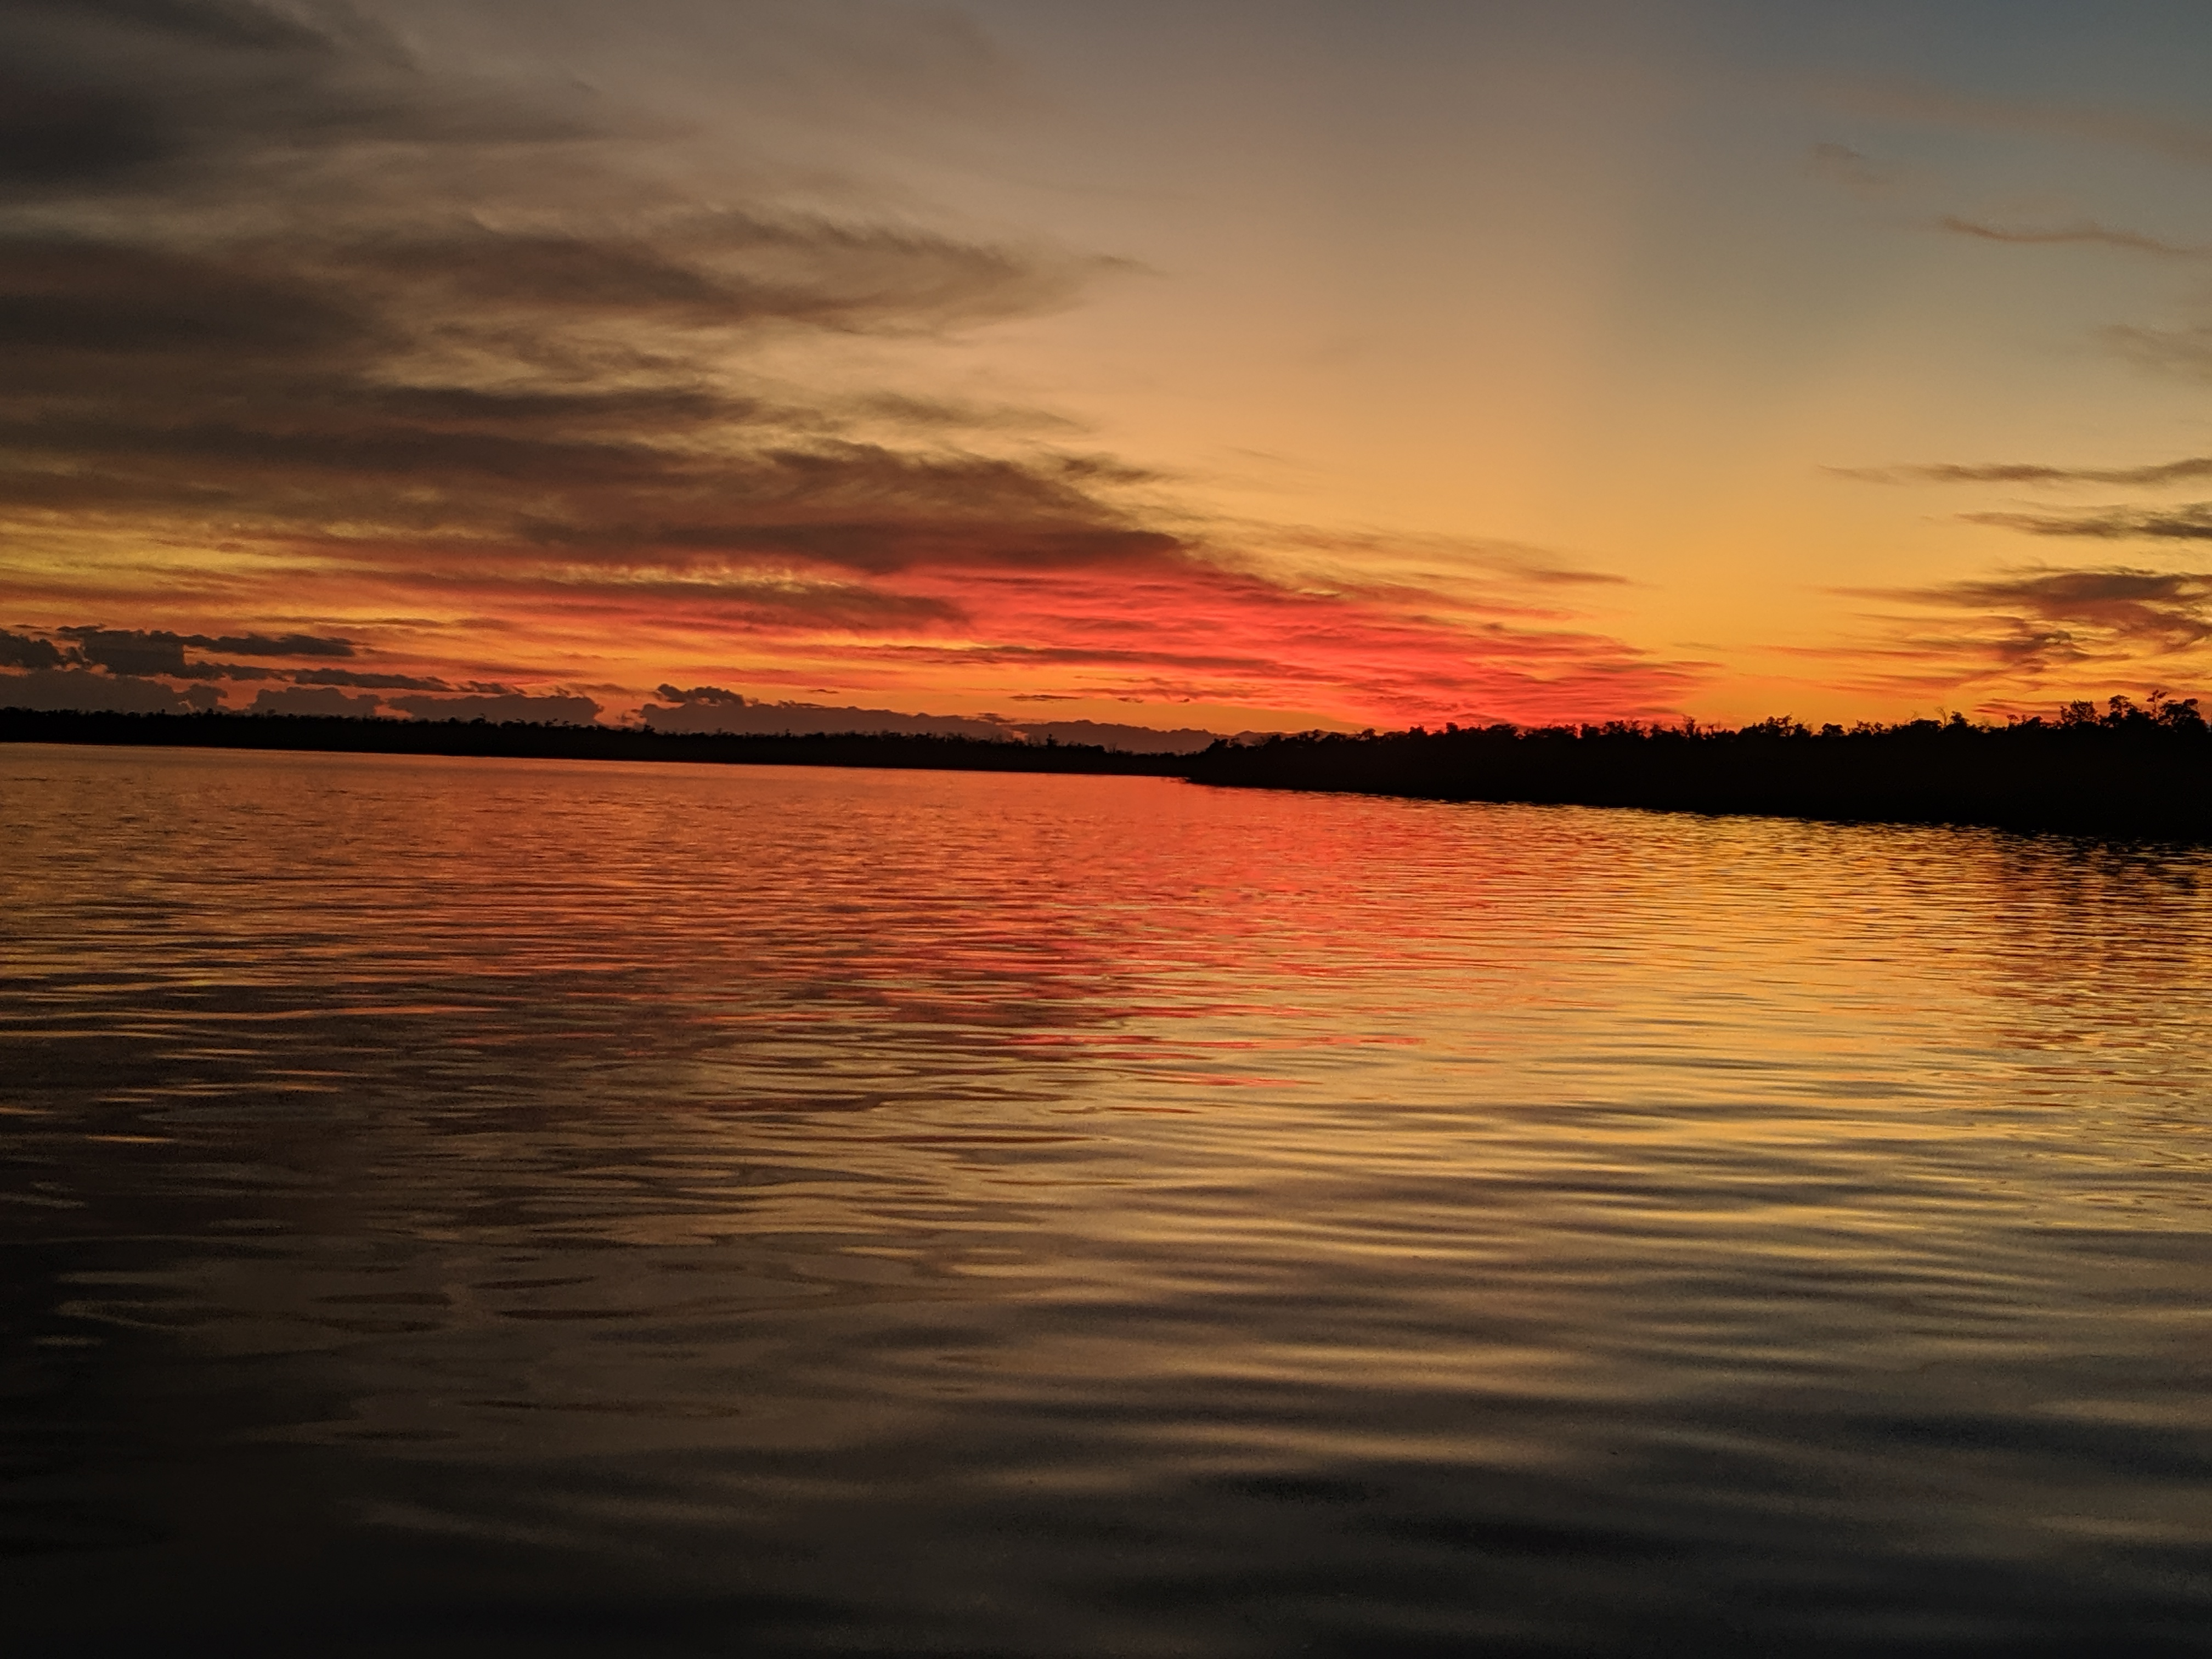 Sunset in the Ten Thousand Islands